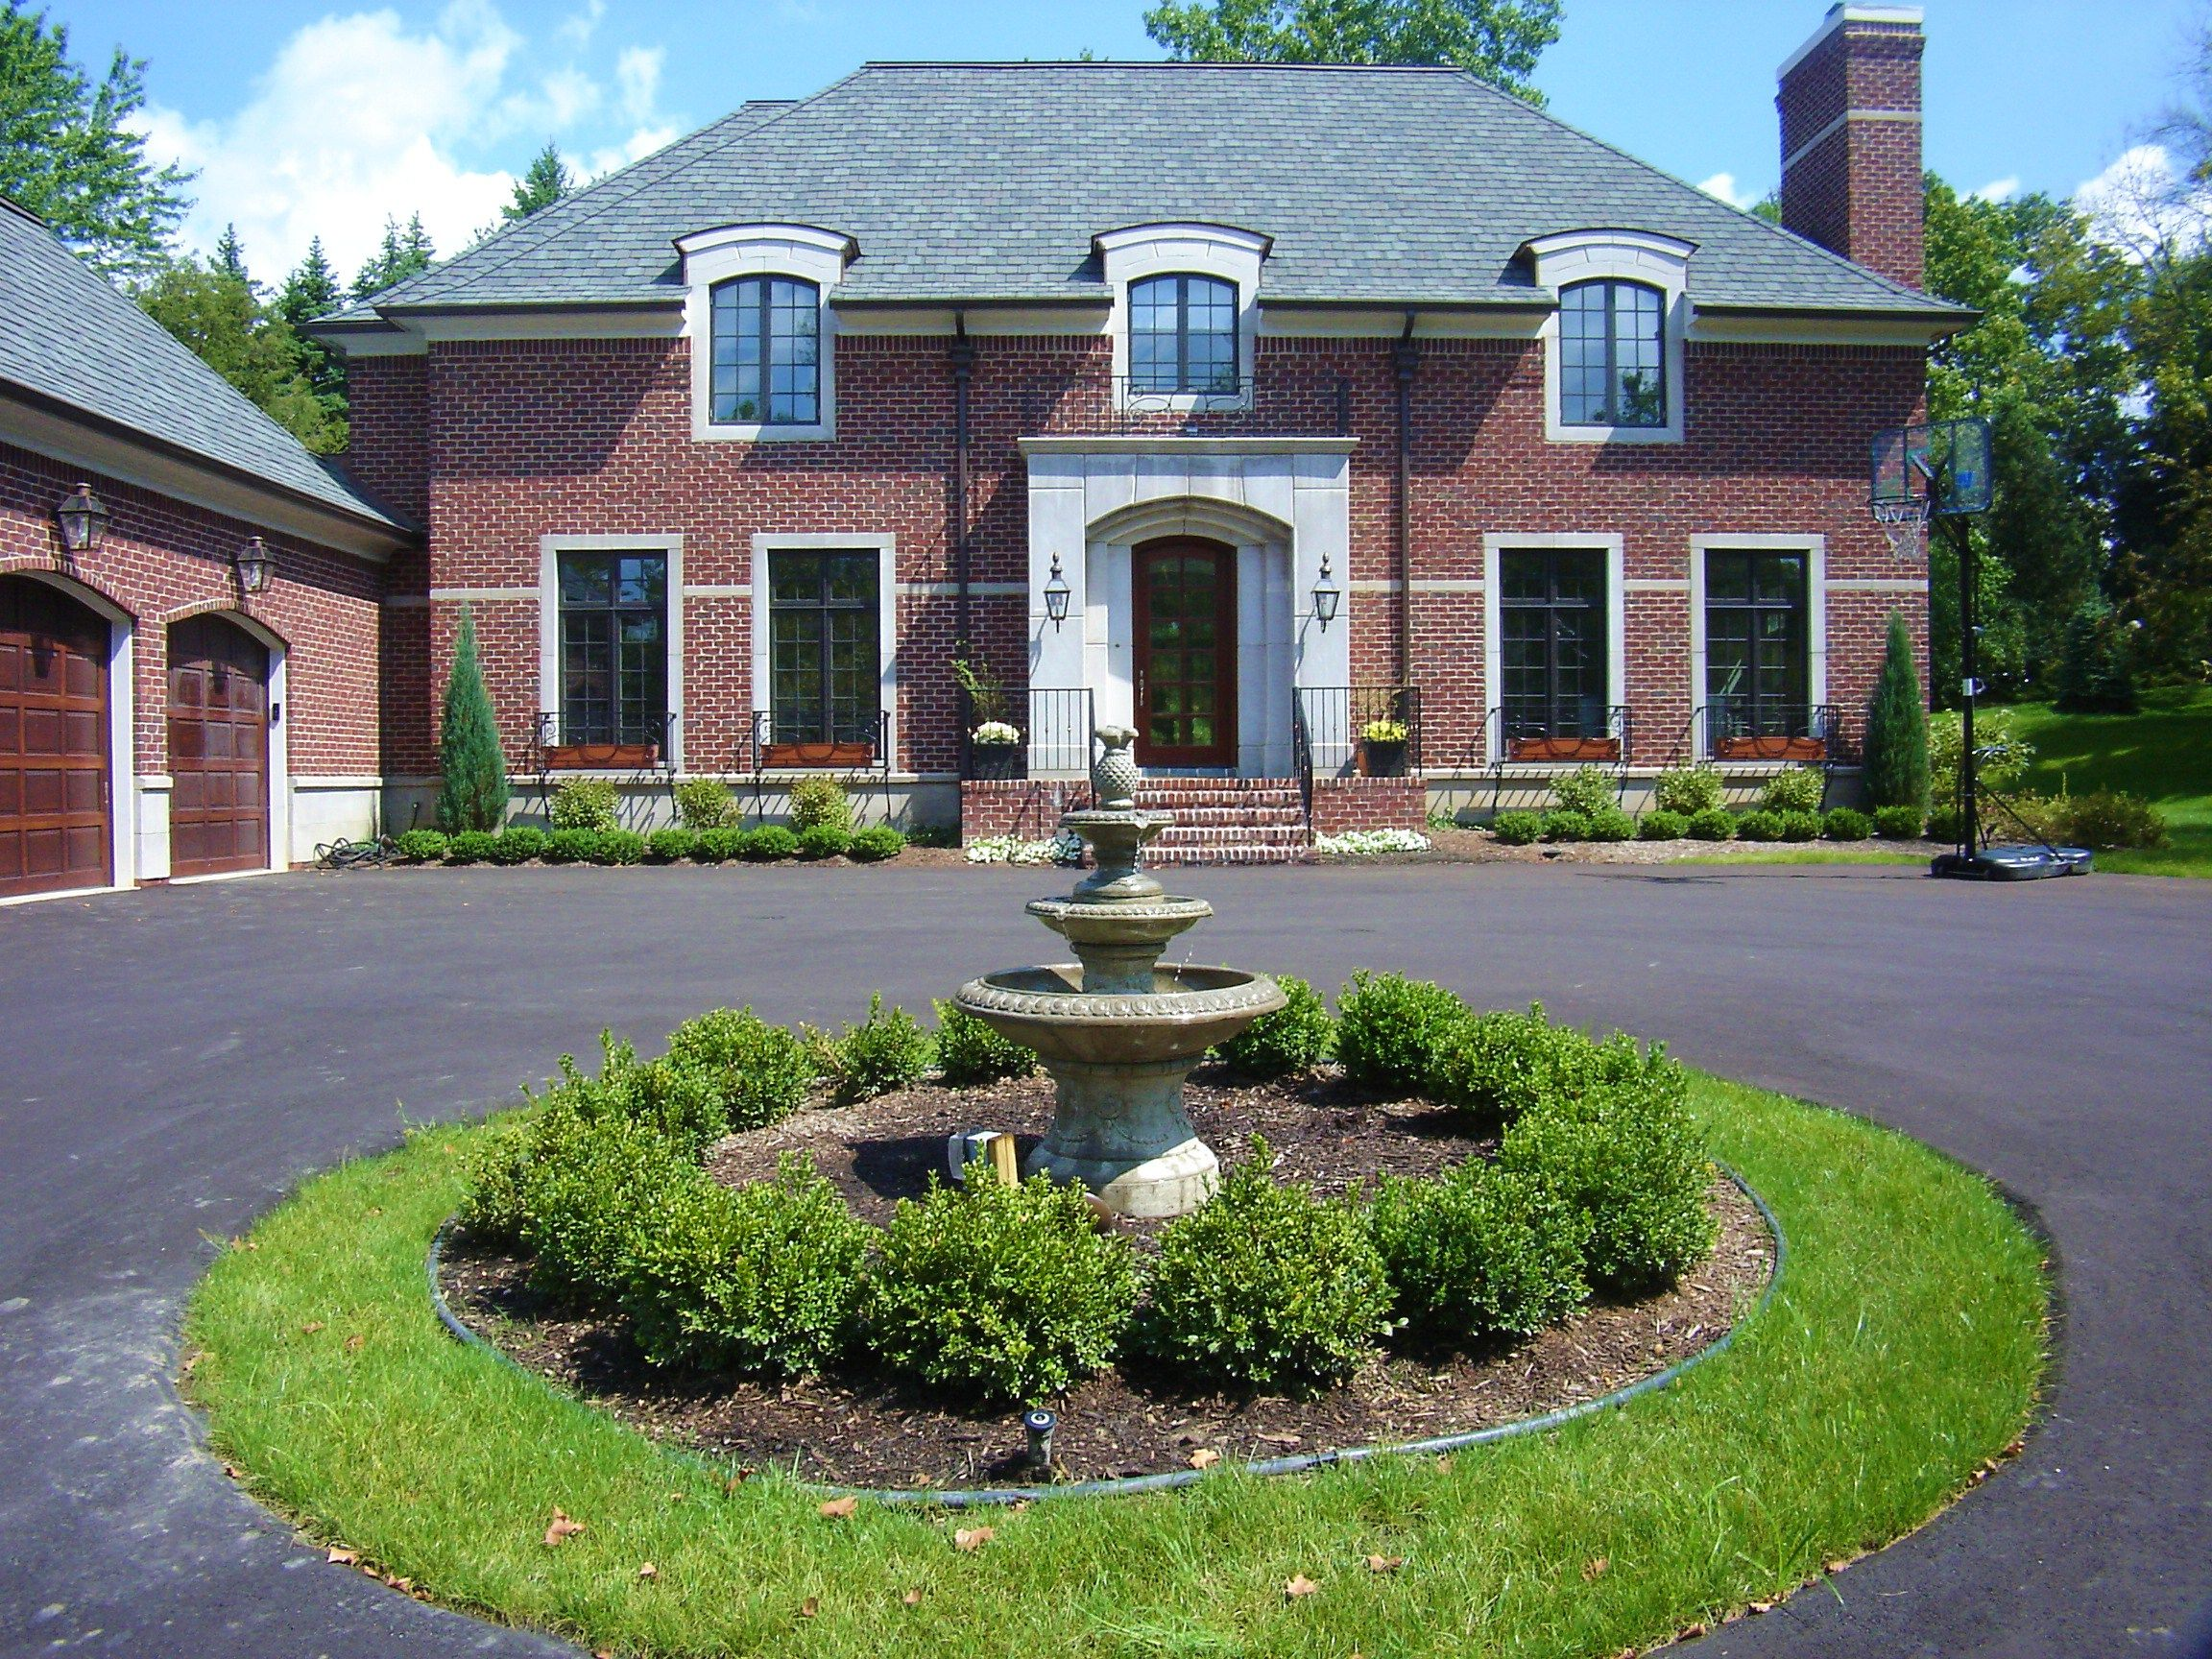 Circle driveway with boxwood hedge around water fountain for Semi circle driveway ideas